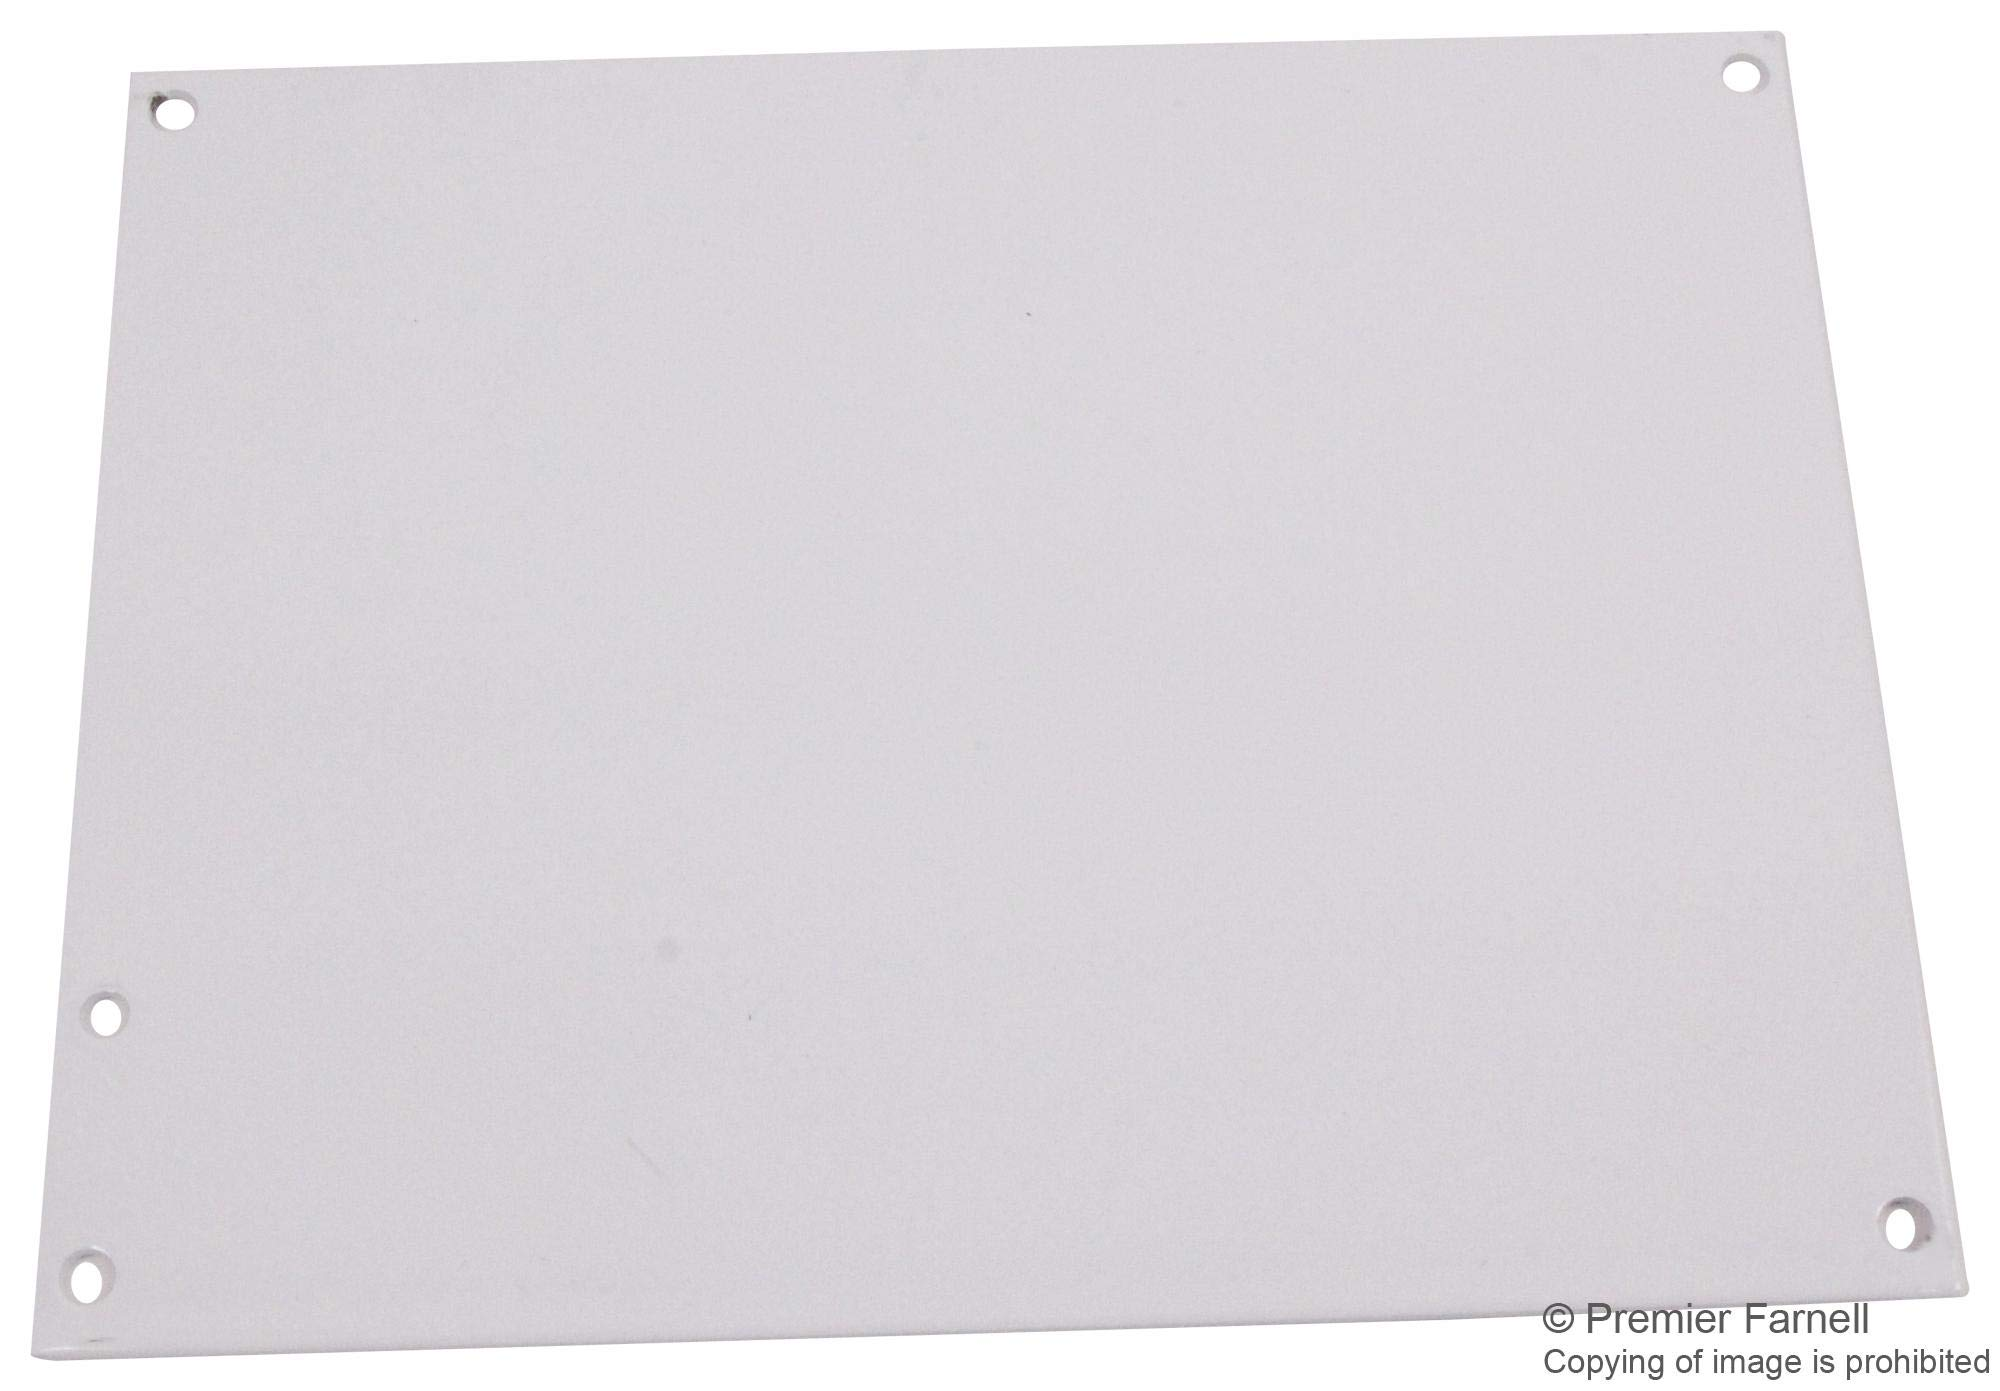 A10P8 - Panel, 14 Gauge, Steel, White, Junction Boxes, 222 mm, 175 mm (Pack of 2) (A10P8)